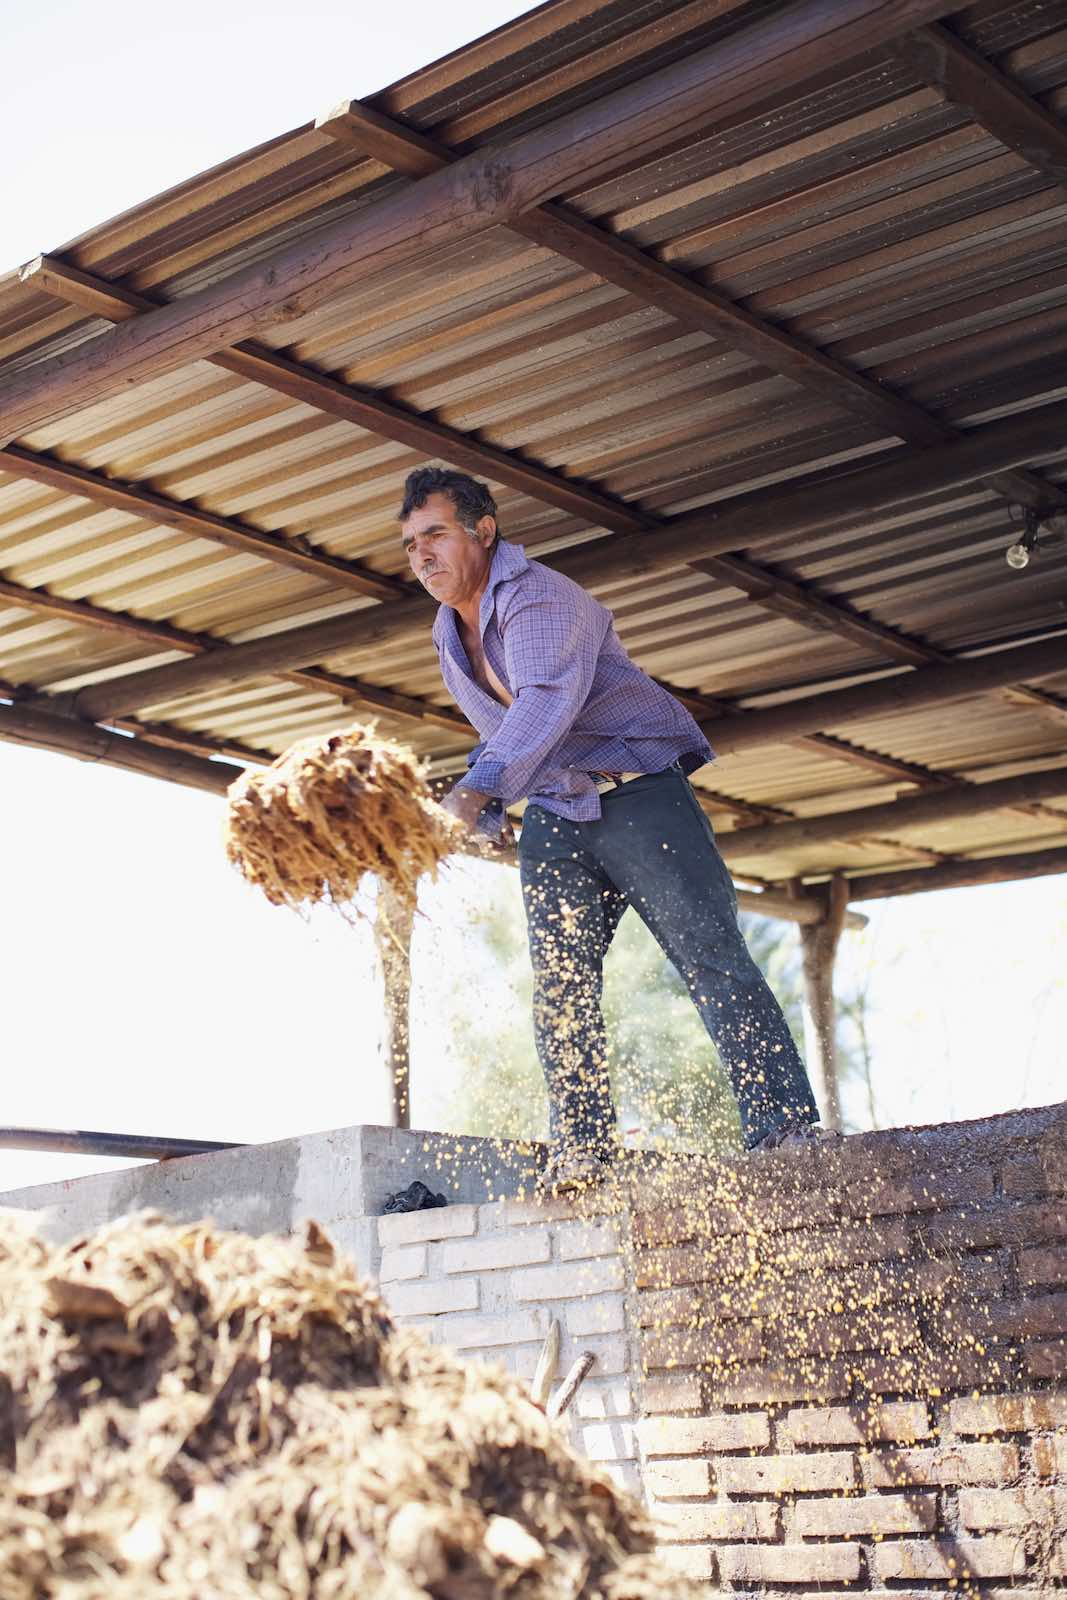 Jody Horton Photography - Farmer piling used agave fibers.